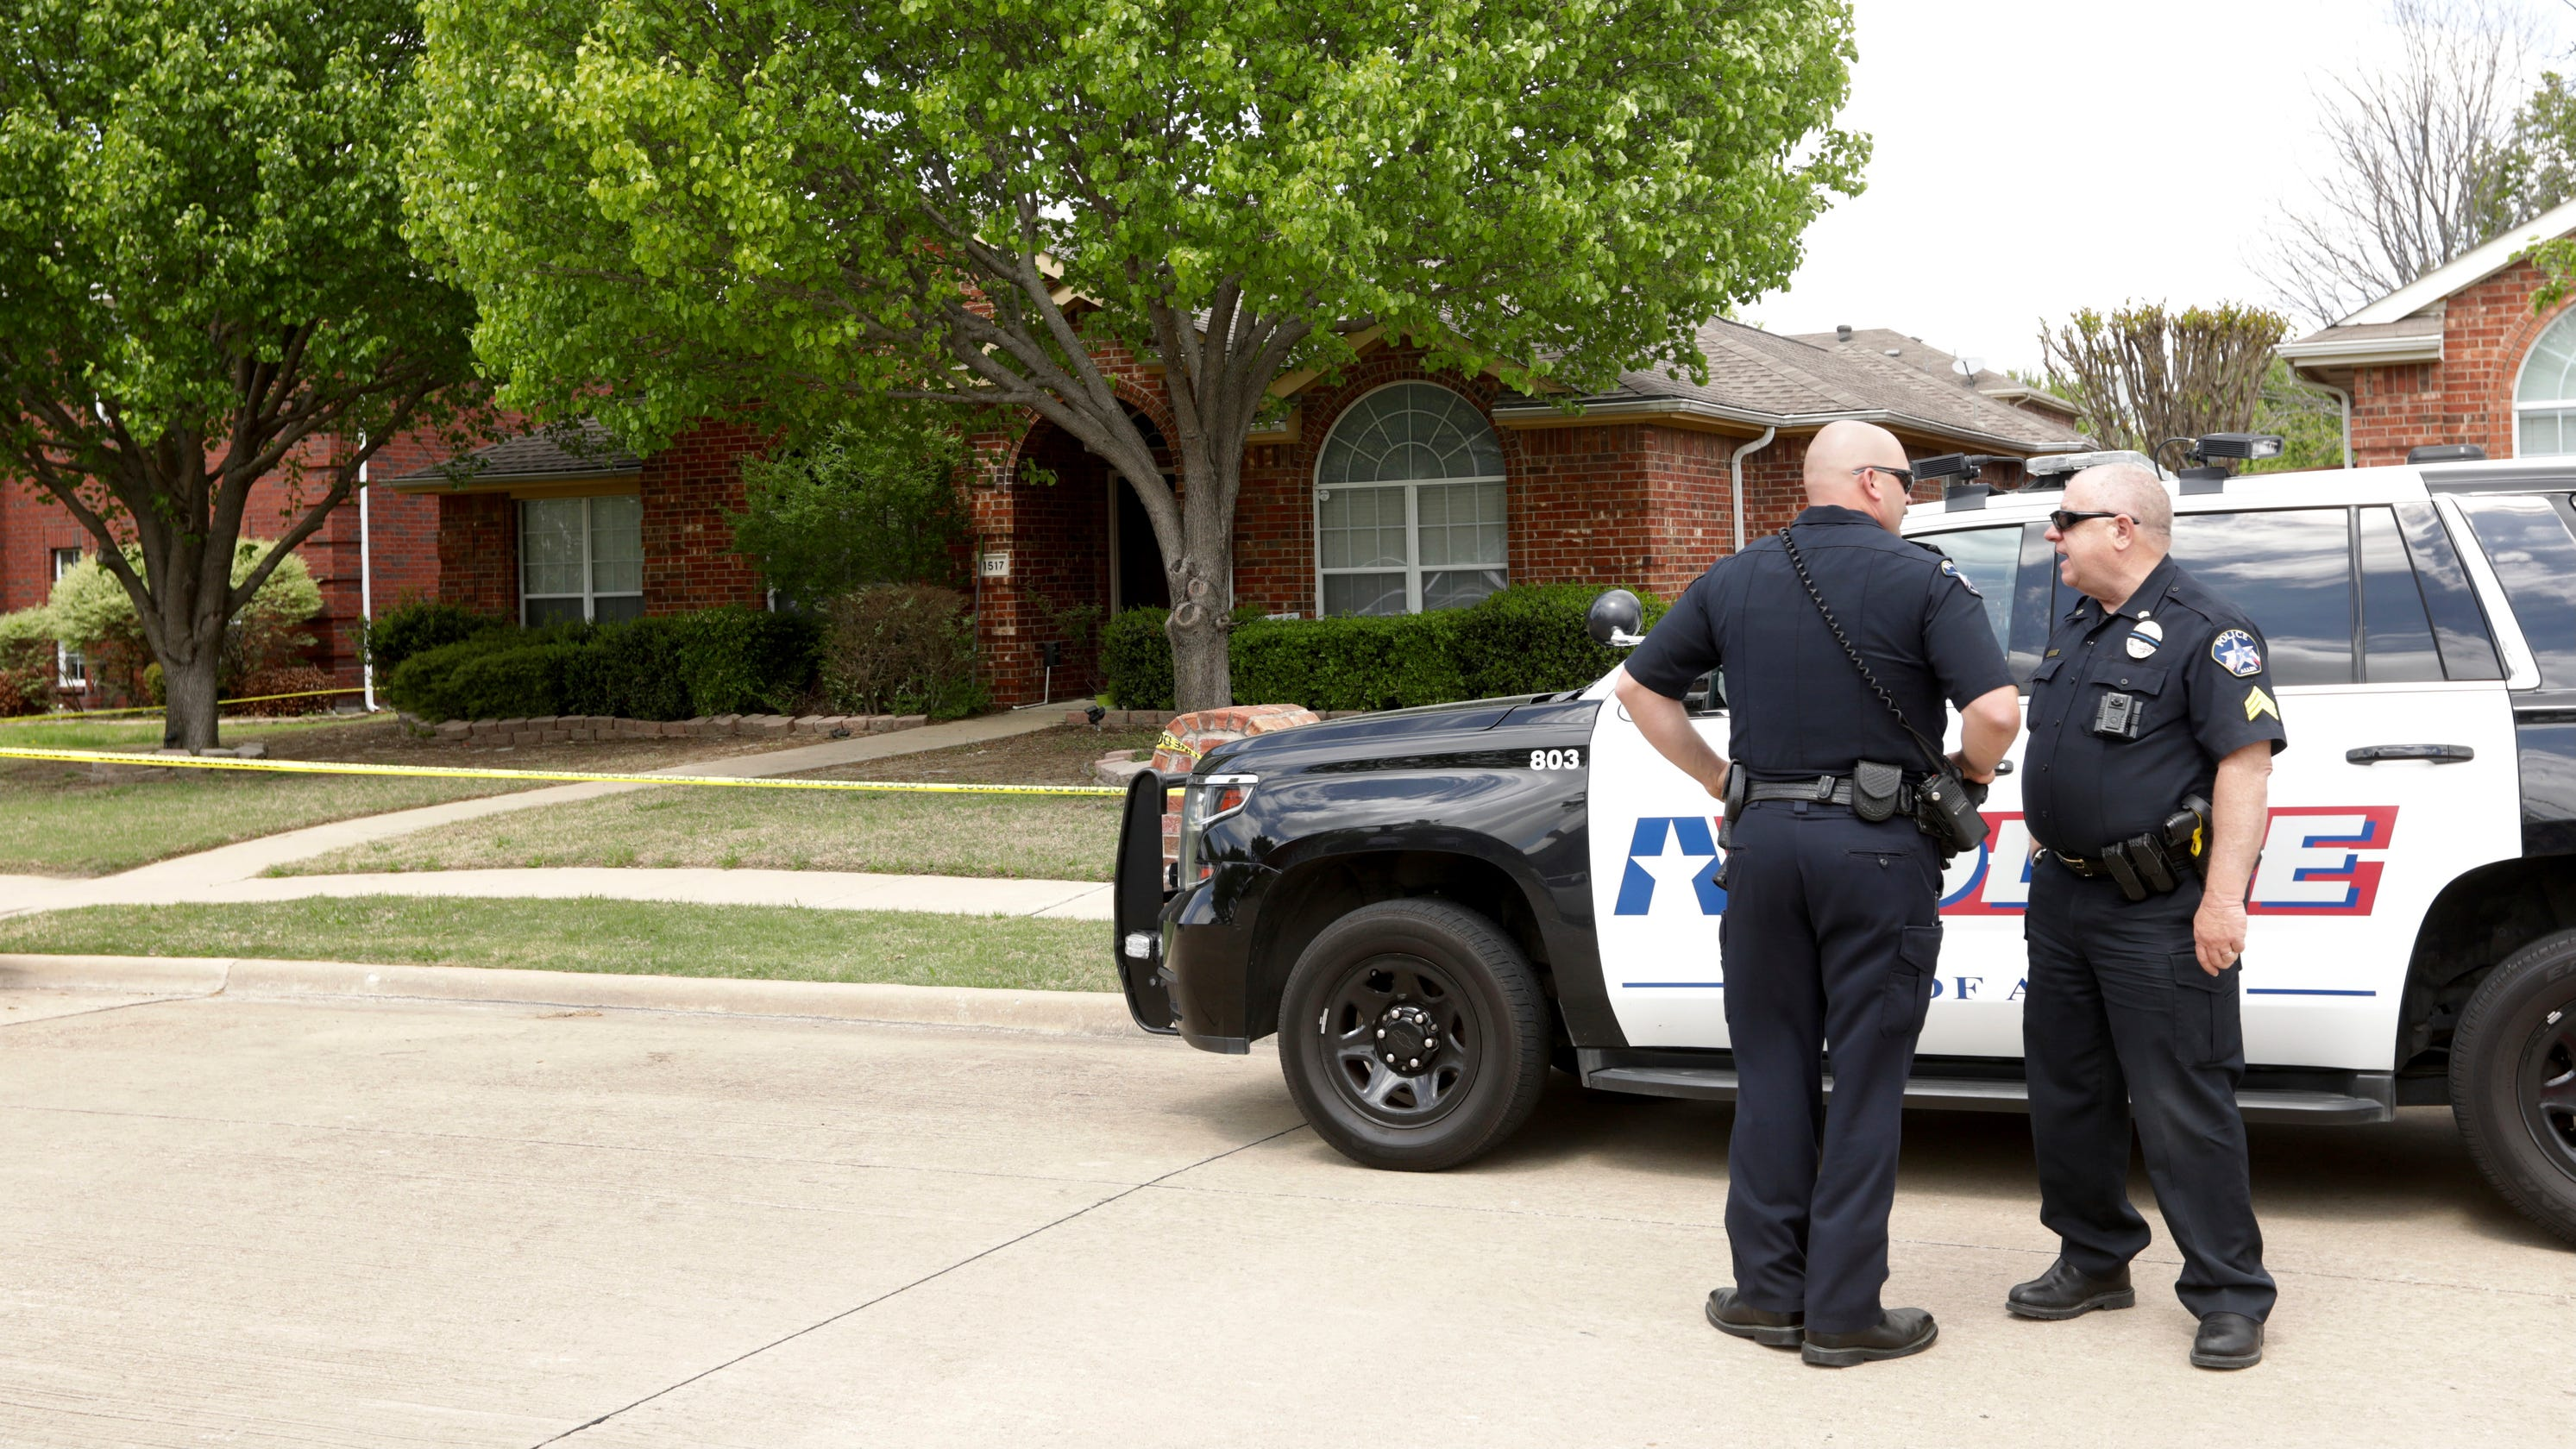 6 family members dead in apparent murder-suicide at Texas home, police say